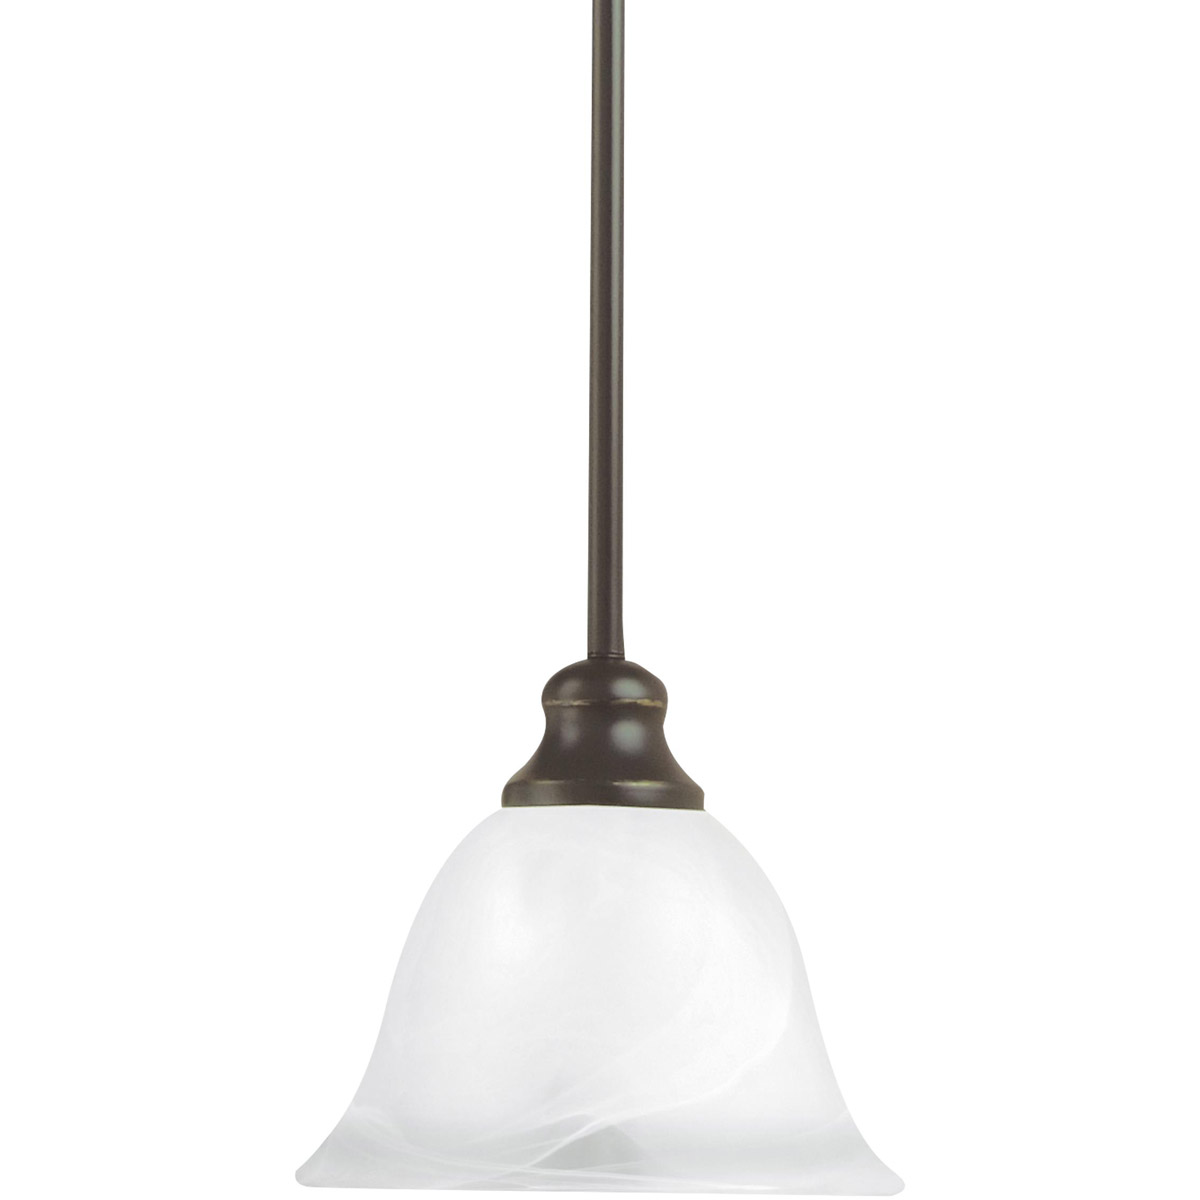 Sea Gull 61940-782 Windgate 1 Light 7 inch Heirloom Bronze Mini Pendant Ceiling Light in Standard photo